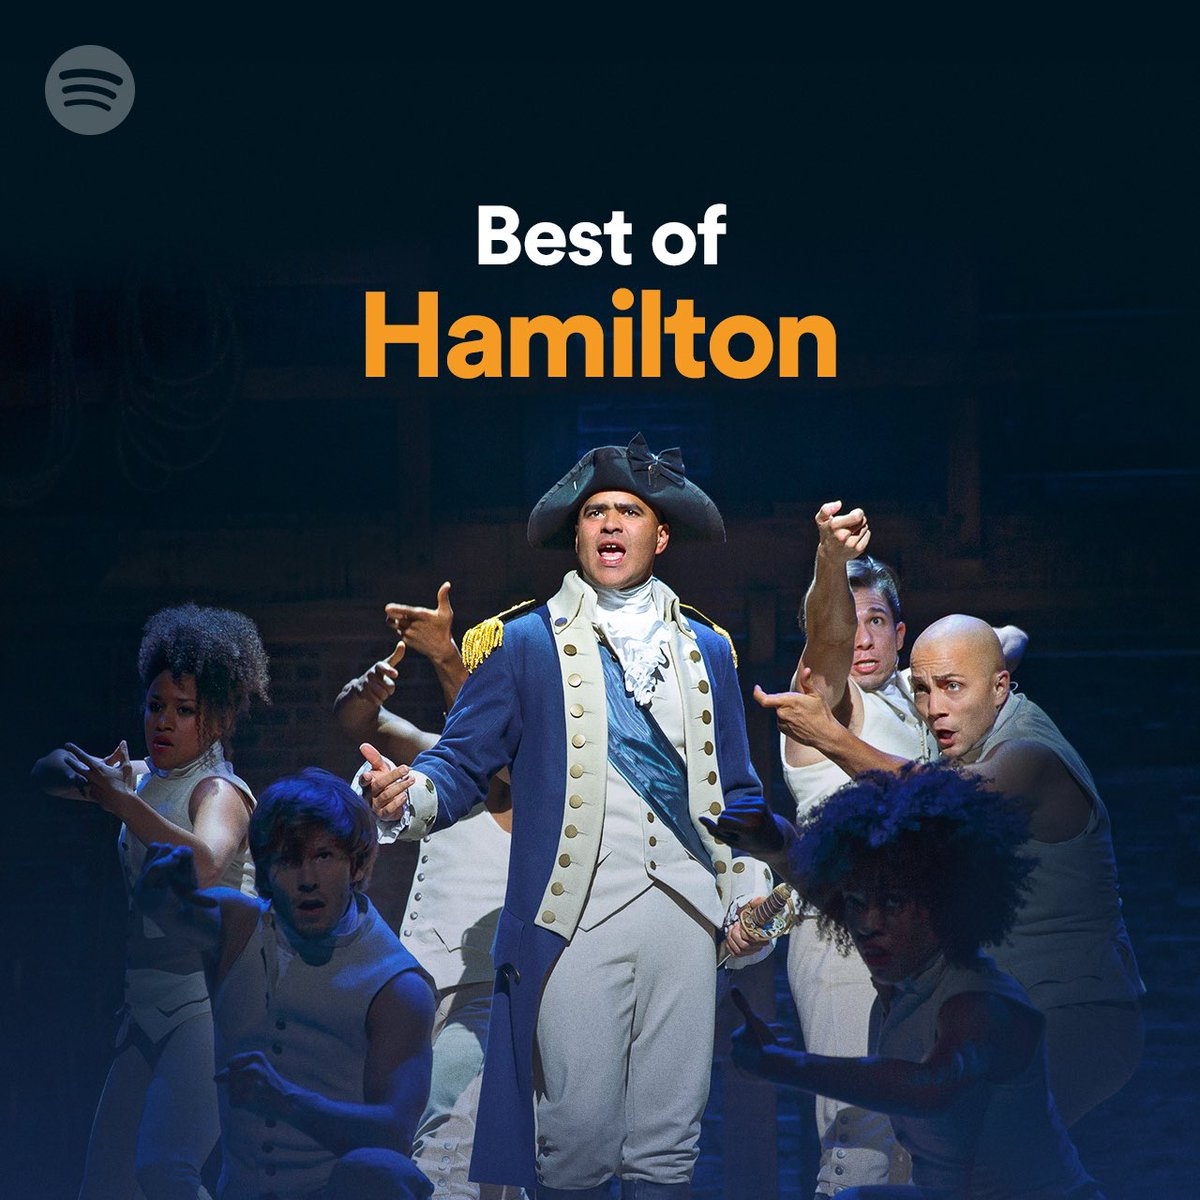 Drop a 🎶 if you're going to be singing to @lin_manuel's Best of Hamilton playlist all weekend spoti.fi/BestofHamilton